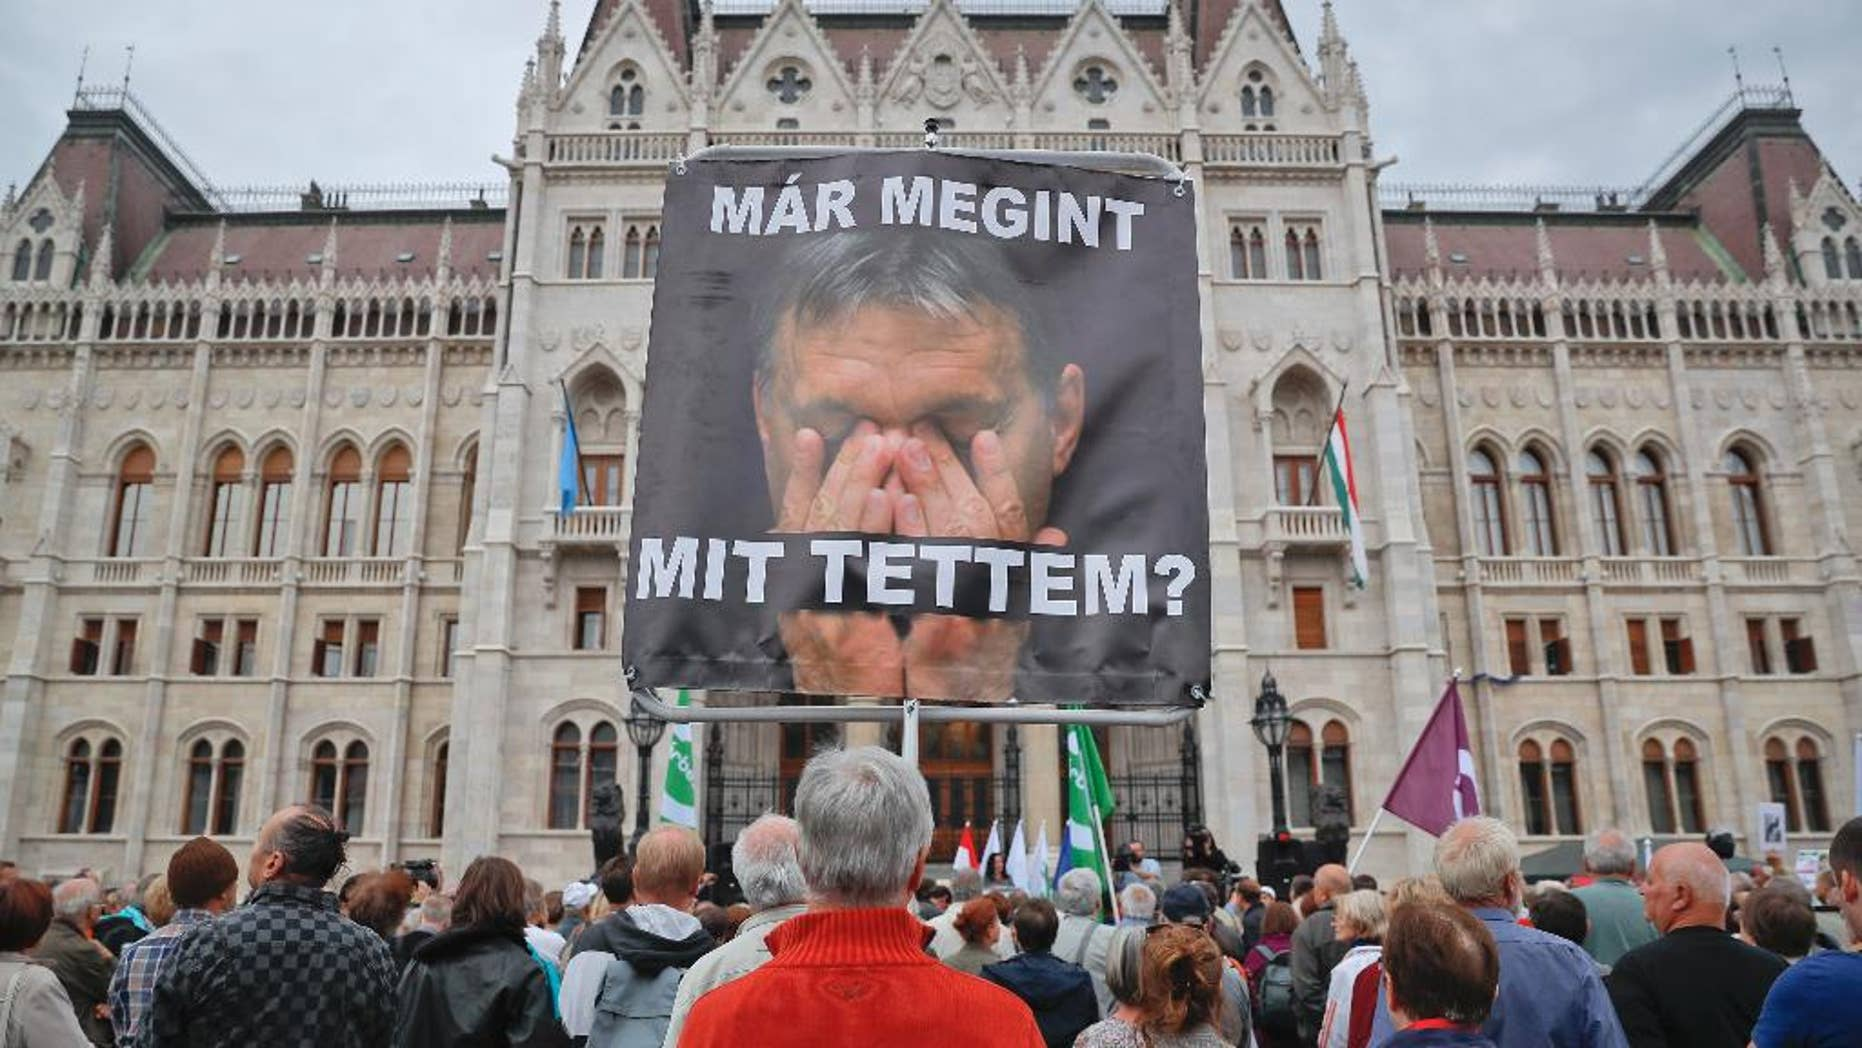 """A man holds a poster of Hungarian Premier Viktor Orban that reads """"What have I done again"""" during a protest by opposition parties against Orban's policies on migrants in Budapest, Hungary, Sunday, Oct. 2, 2016. Hungarians vote in a referendum which Prime Minister Viktor Orban hopes will give his government the popular support it seeks to oppose any future plans by the European Union to resettle asylum seekers among its member states. (AP Photo/Vadim Ghirda)"""